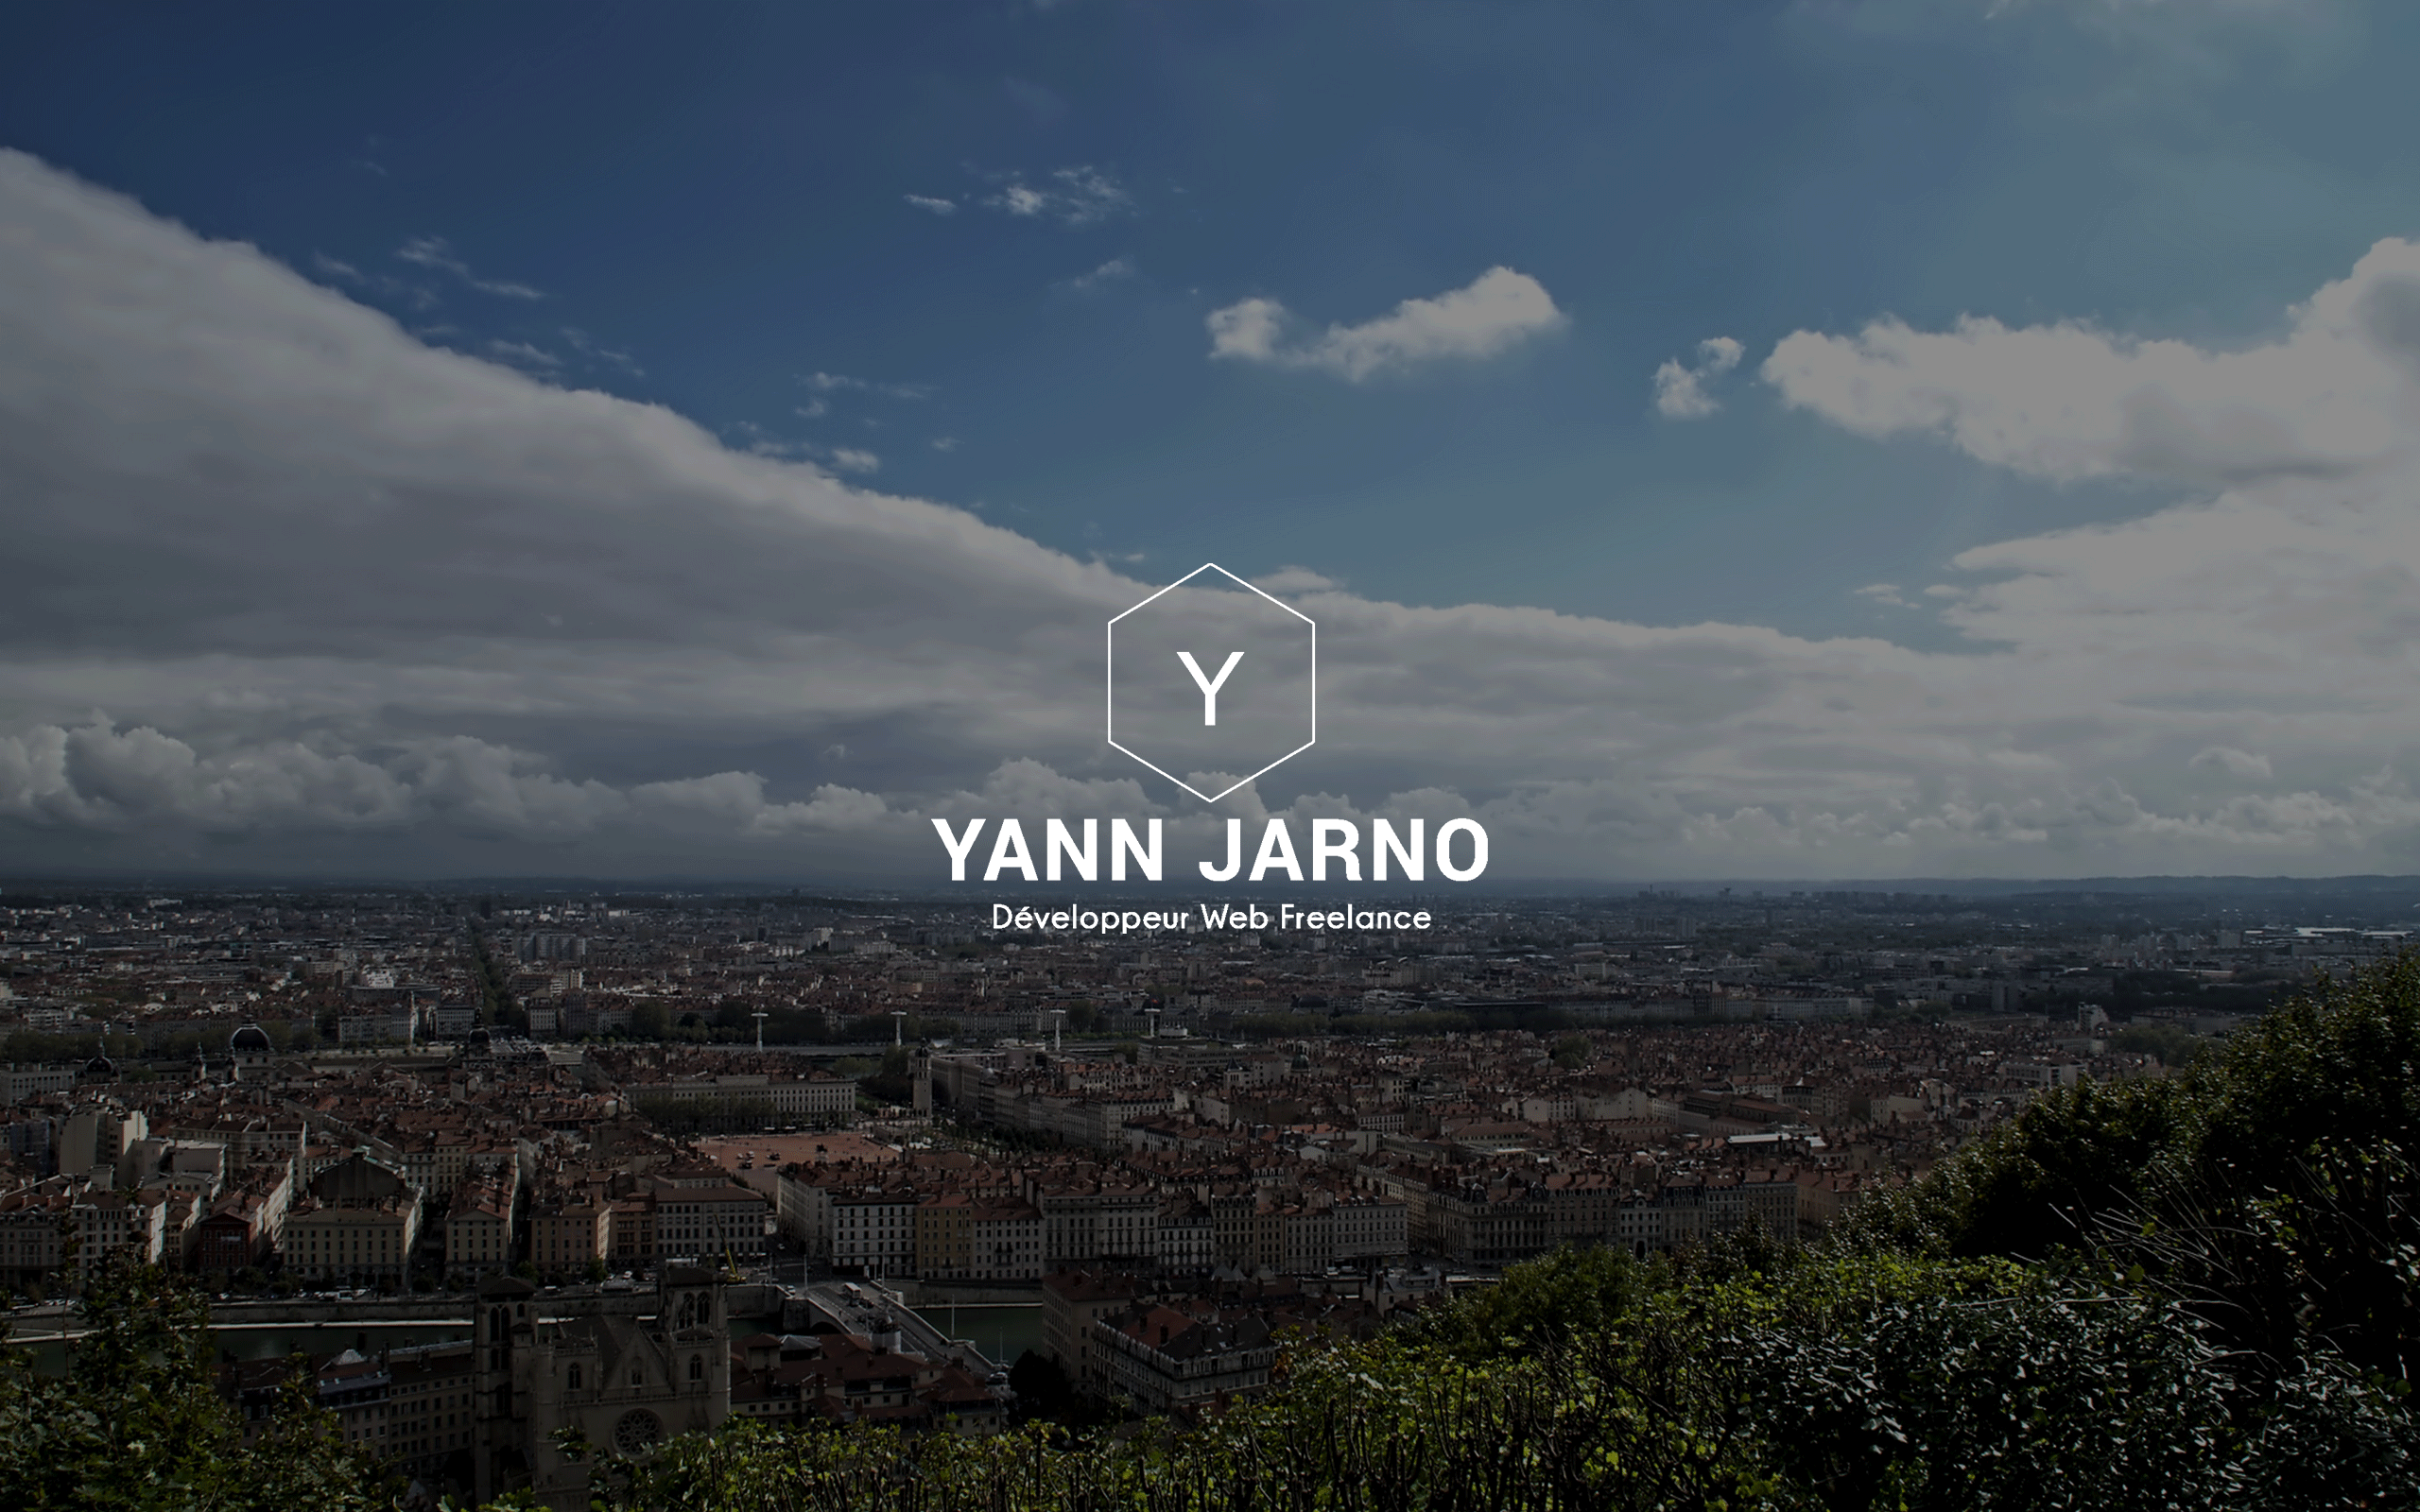 yann-jarno-background-32